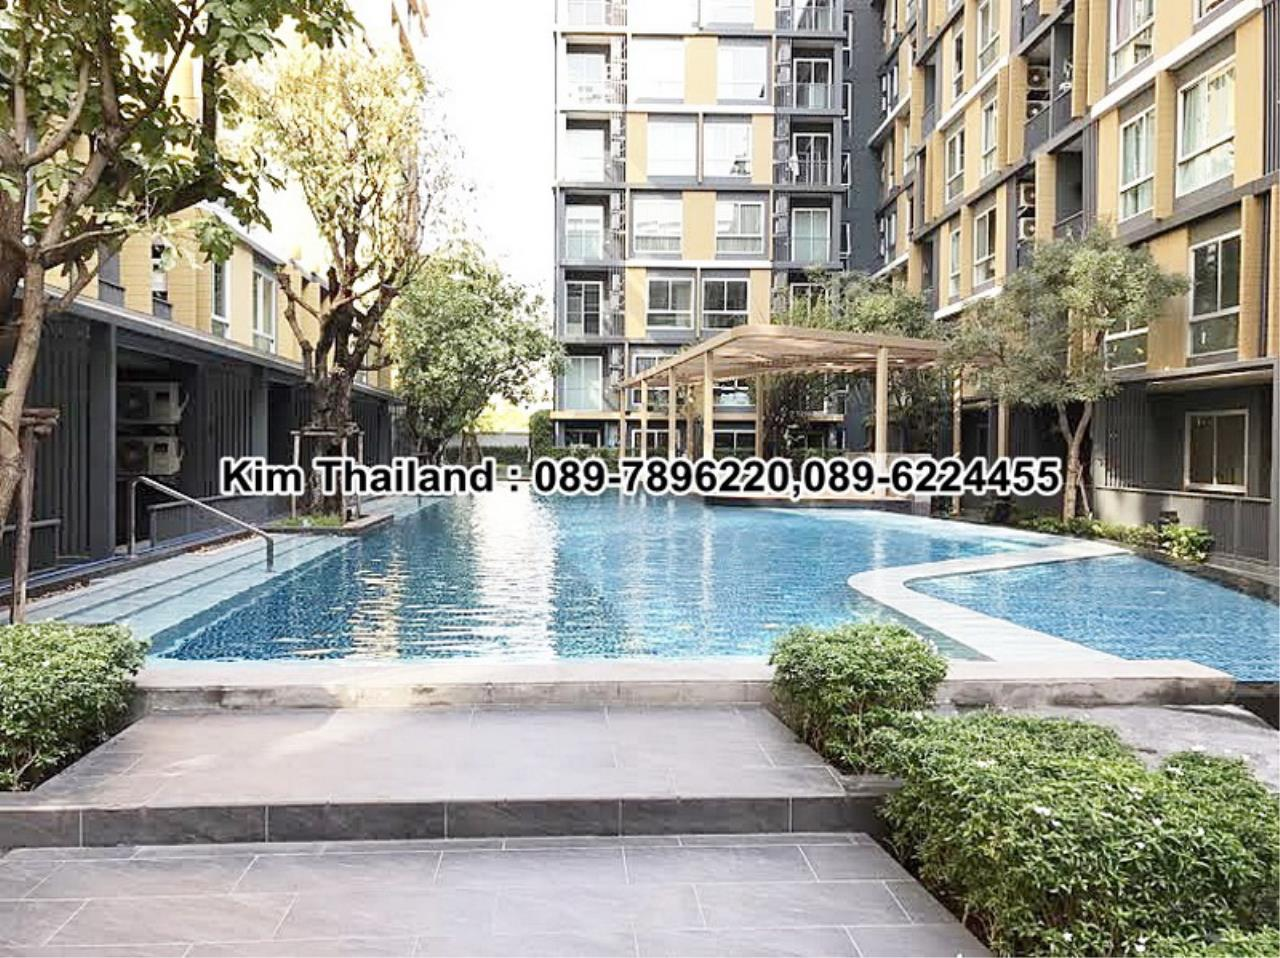 BKKcondorental Agency's For rent, Condo Metroluxe Rama 4., Area 28 sq.m. 1 bedroom. Rental 15,000 THB per month. 9